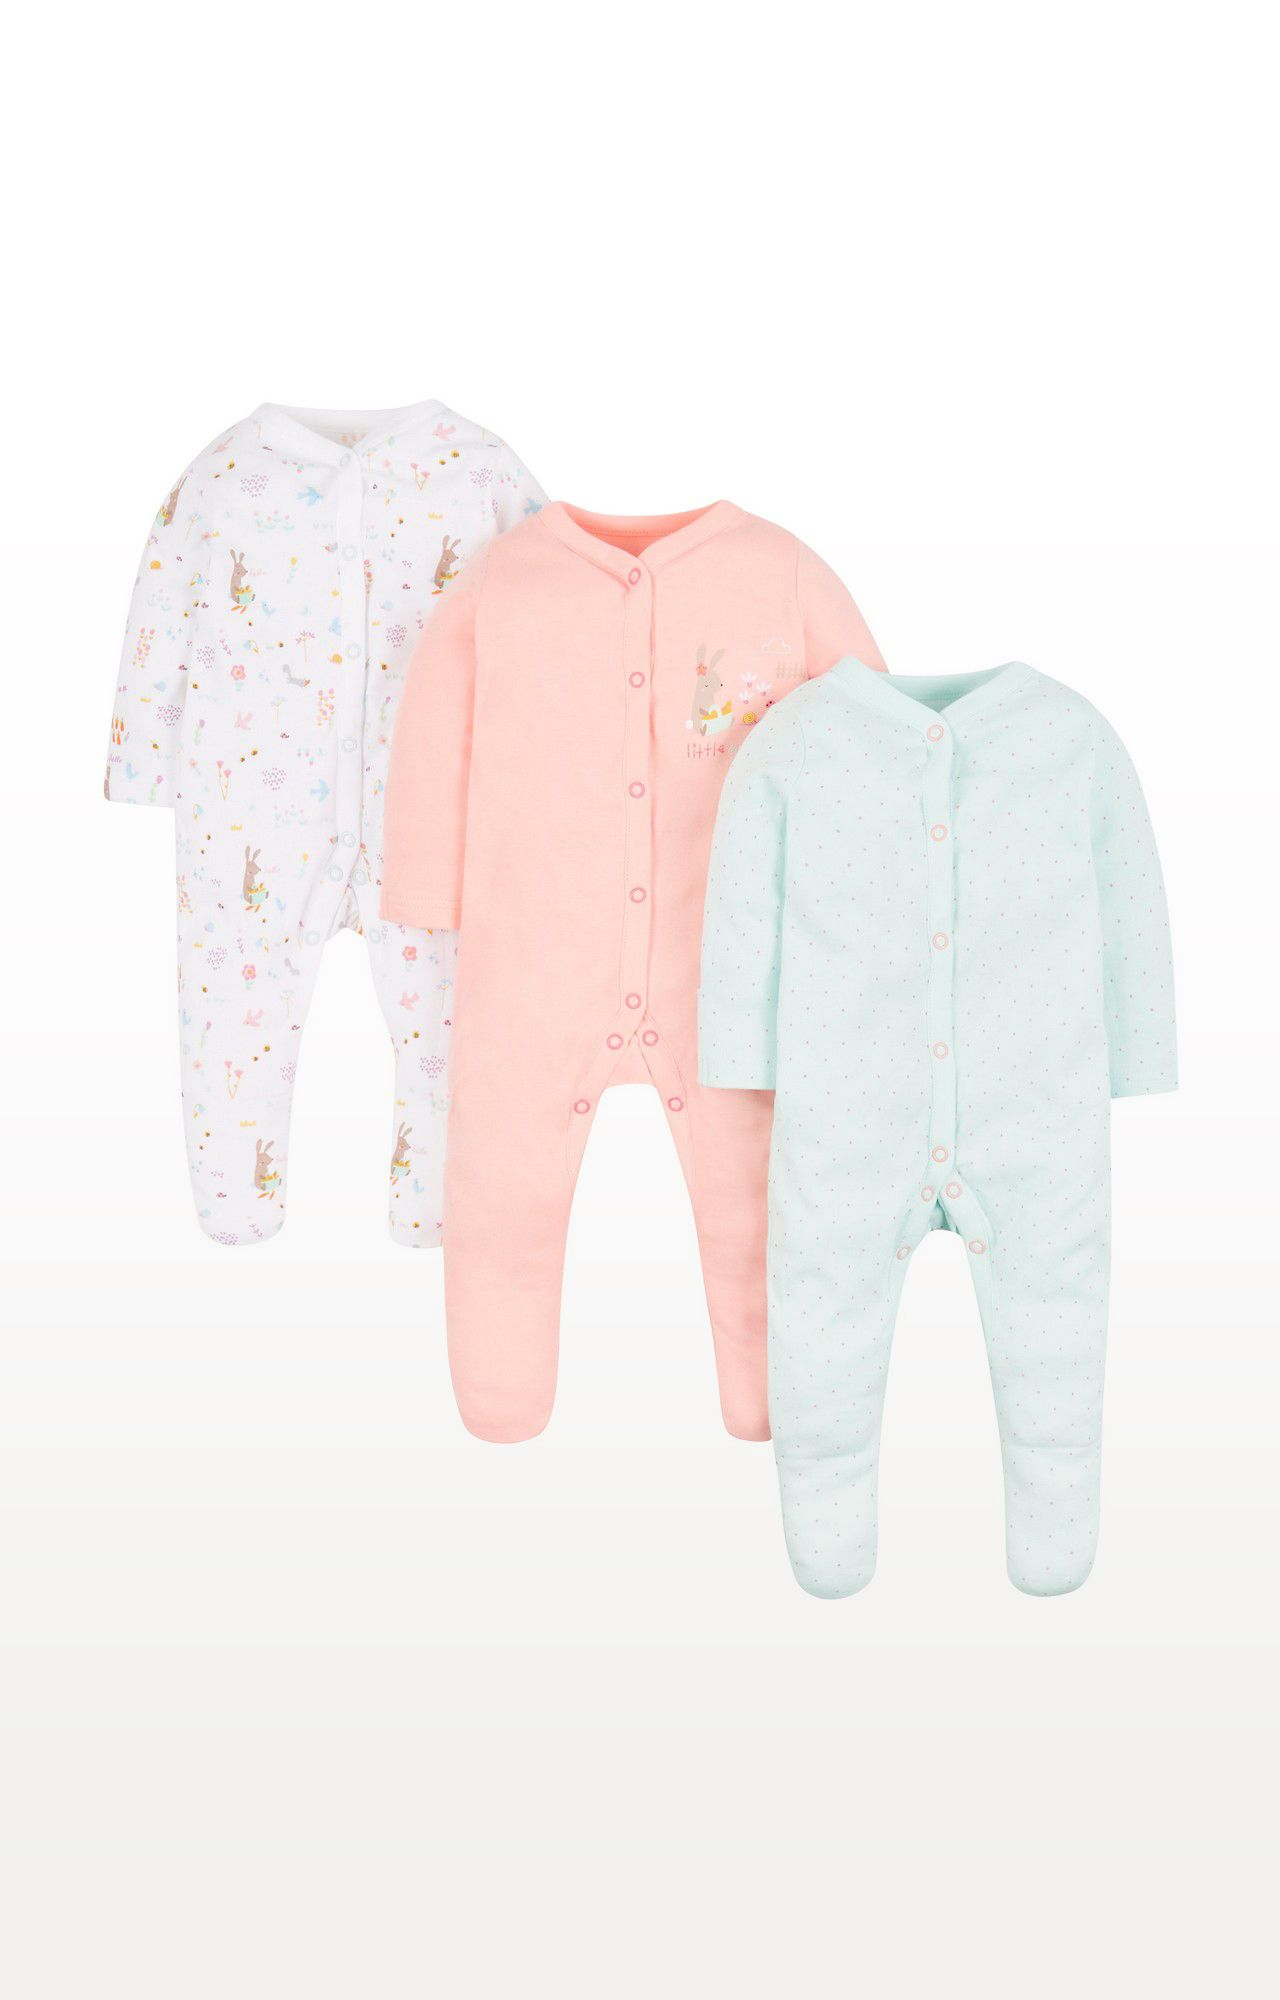 Mothercare | Little Garden Sleepsuits - Pack of 3